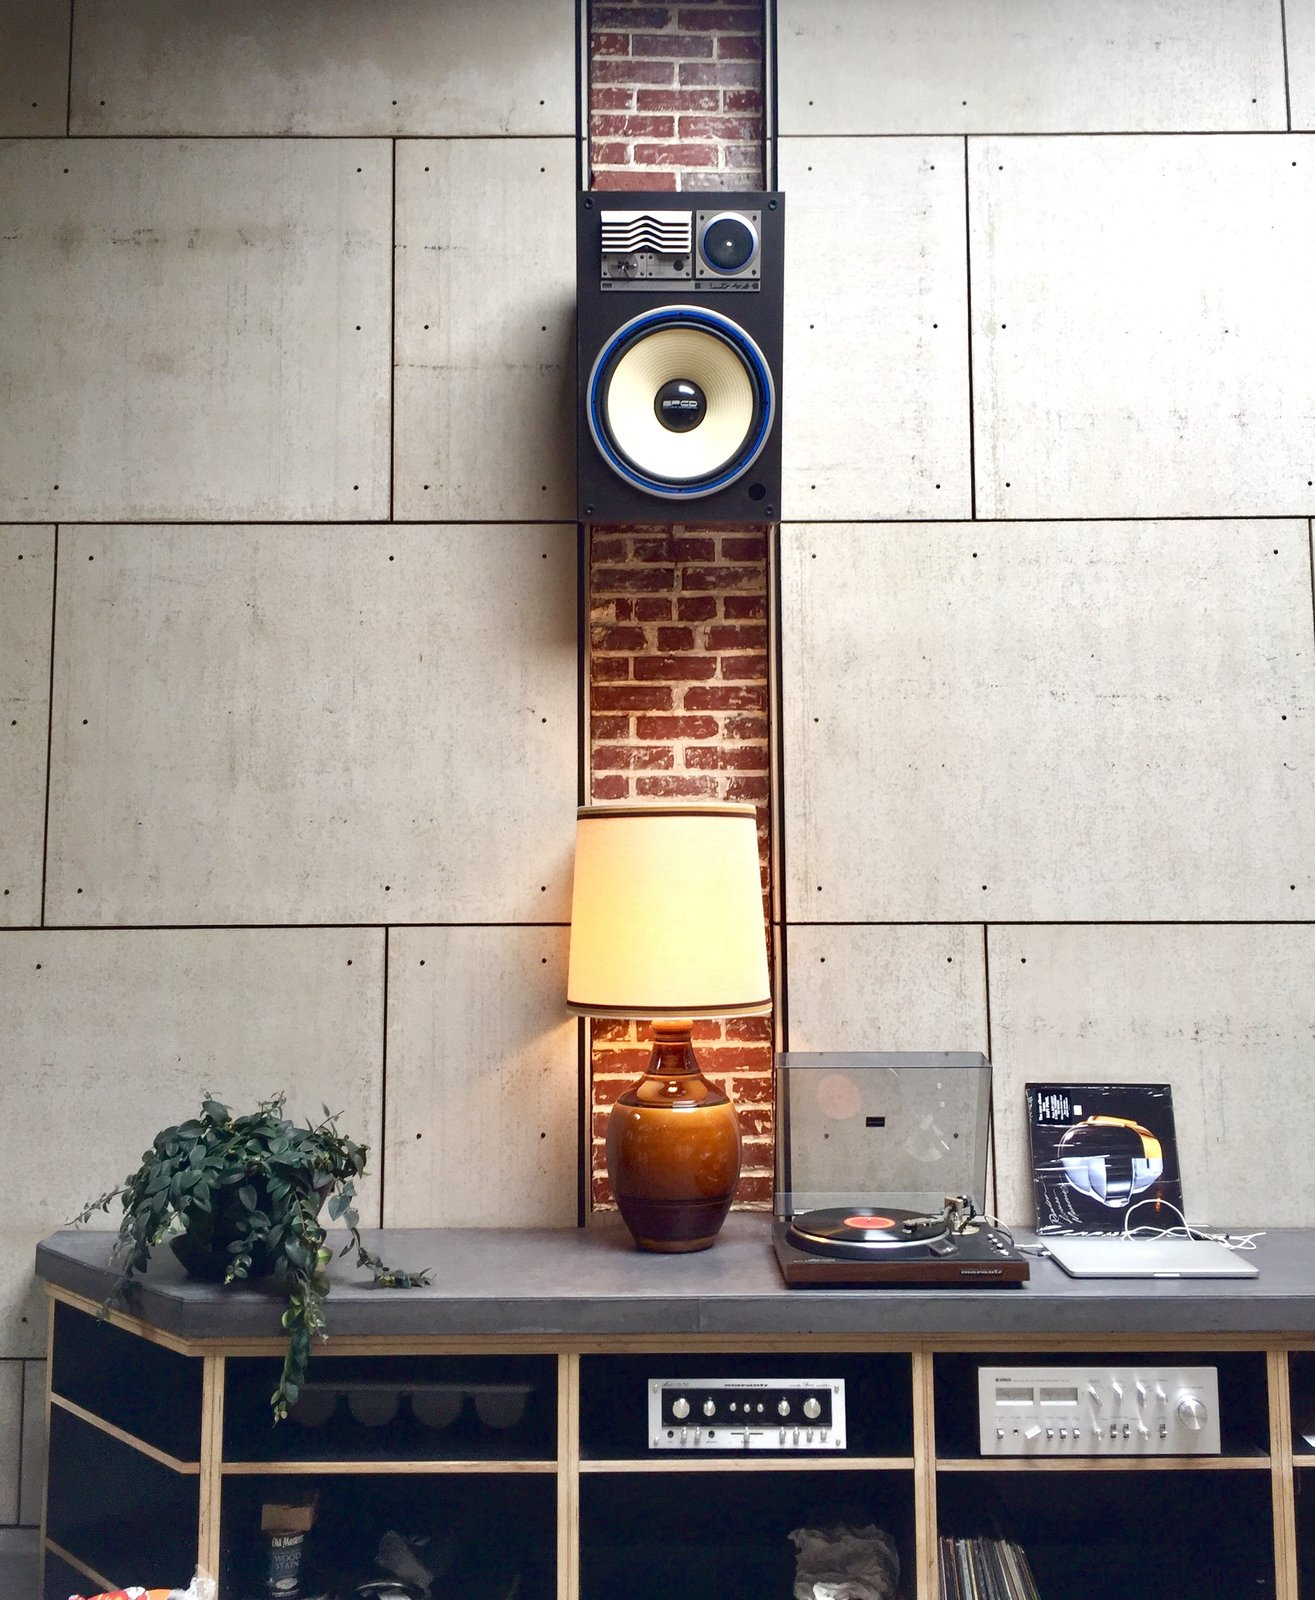 exposed-brick-and-a-1970s-sound-system-add-to-proud-marys-comfy-vibe.jpg